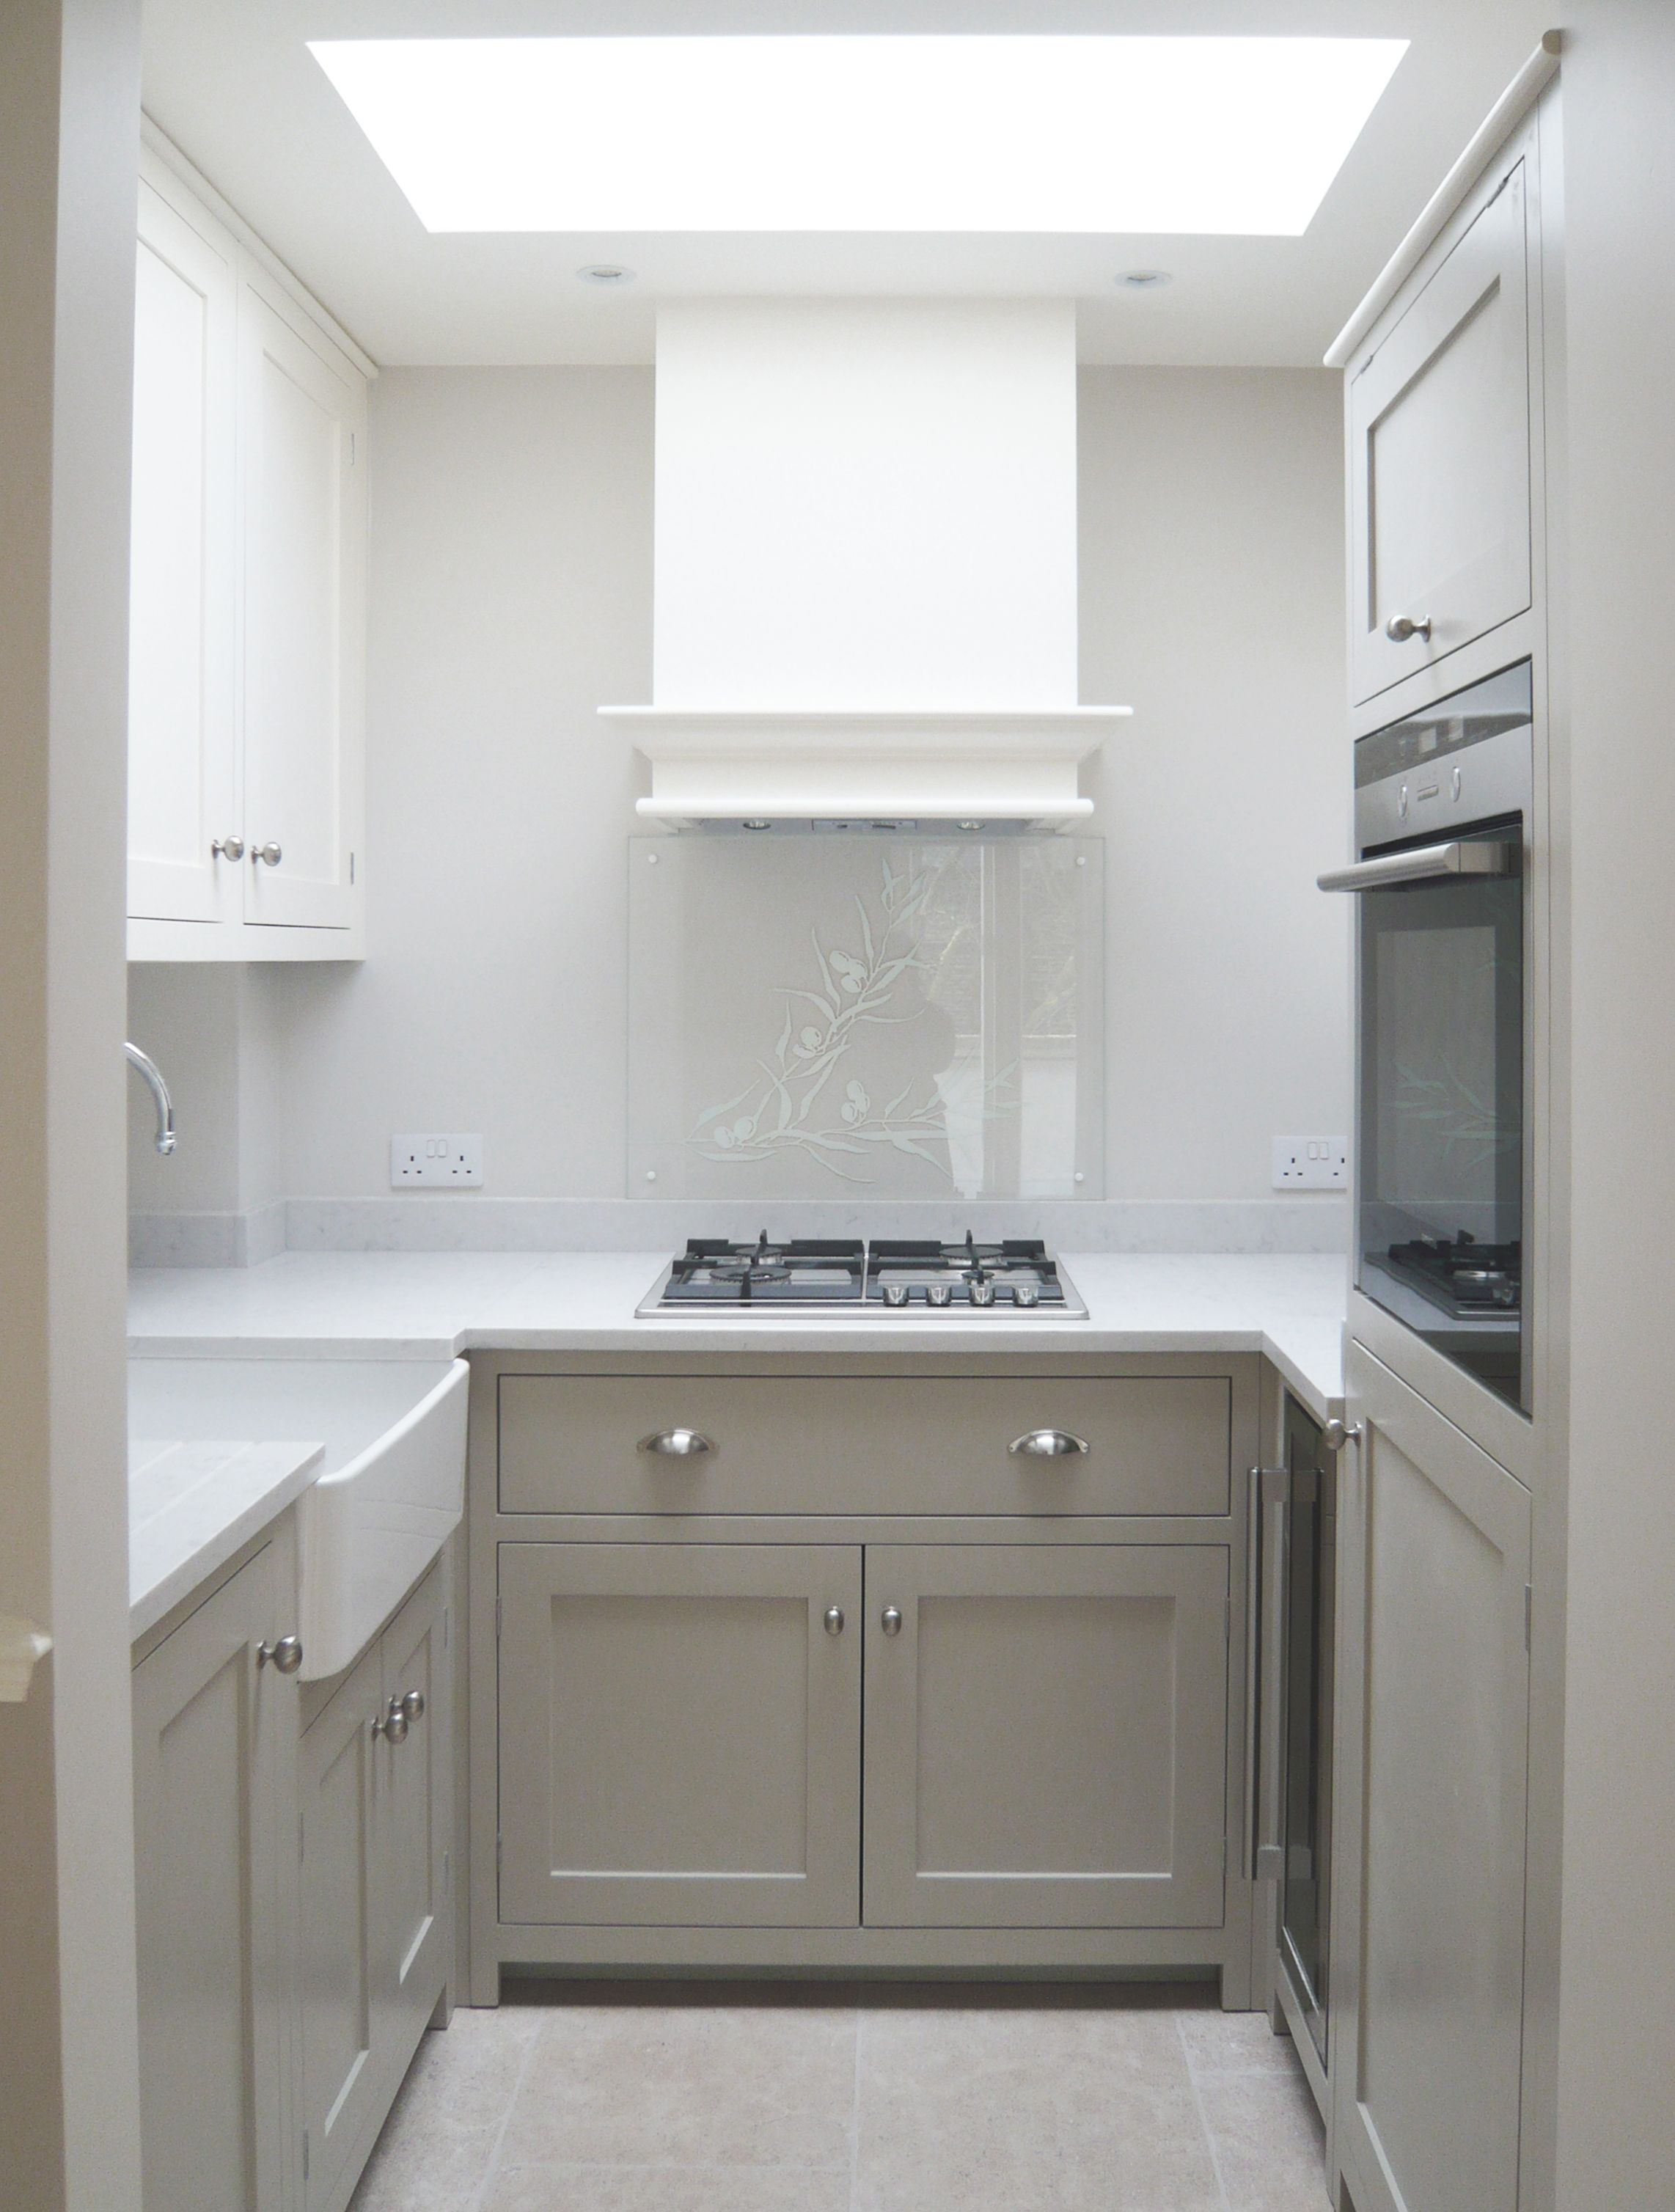 Small Flat Kitchen This Shaker Kitchen By Devol In A Holland Park Flat May Be Small